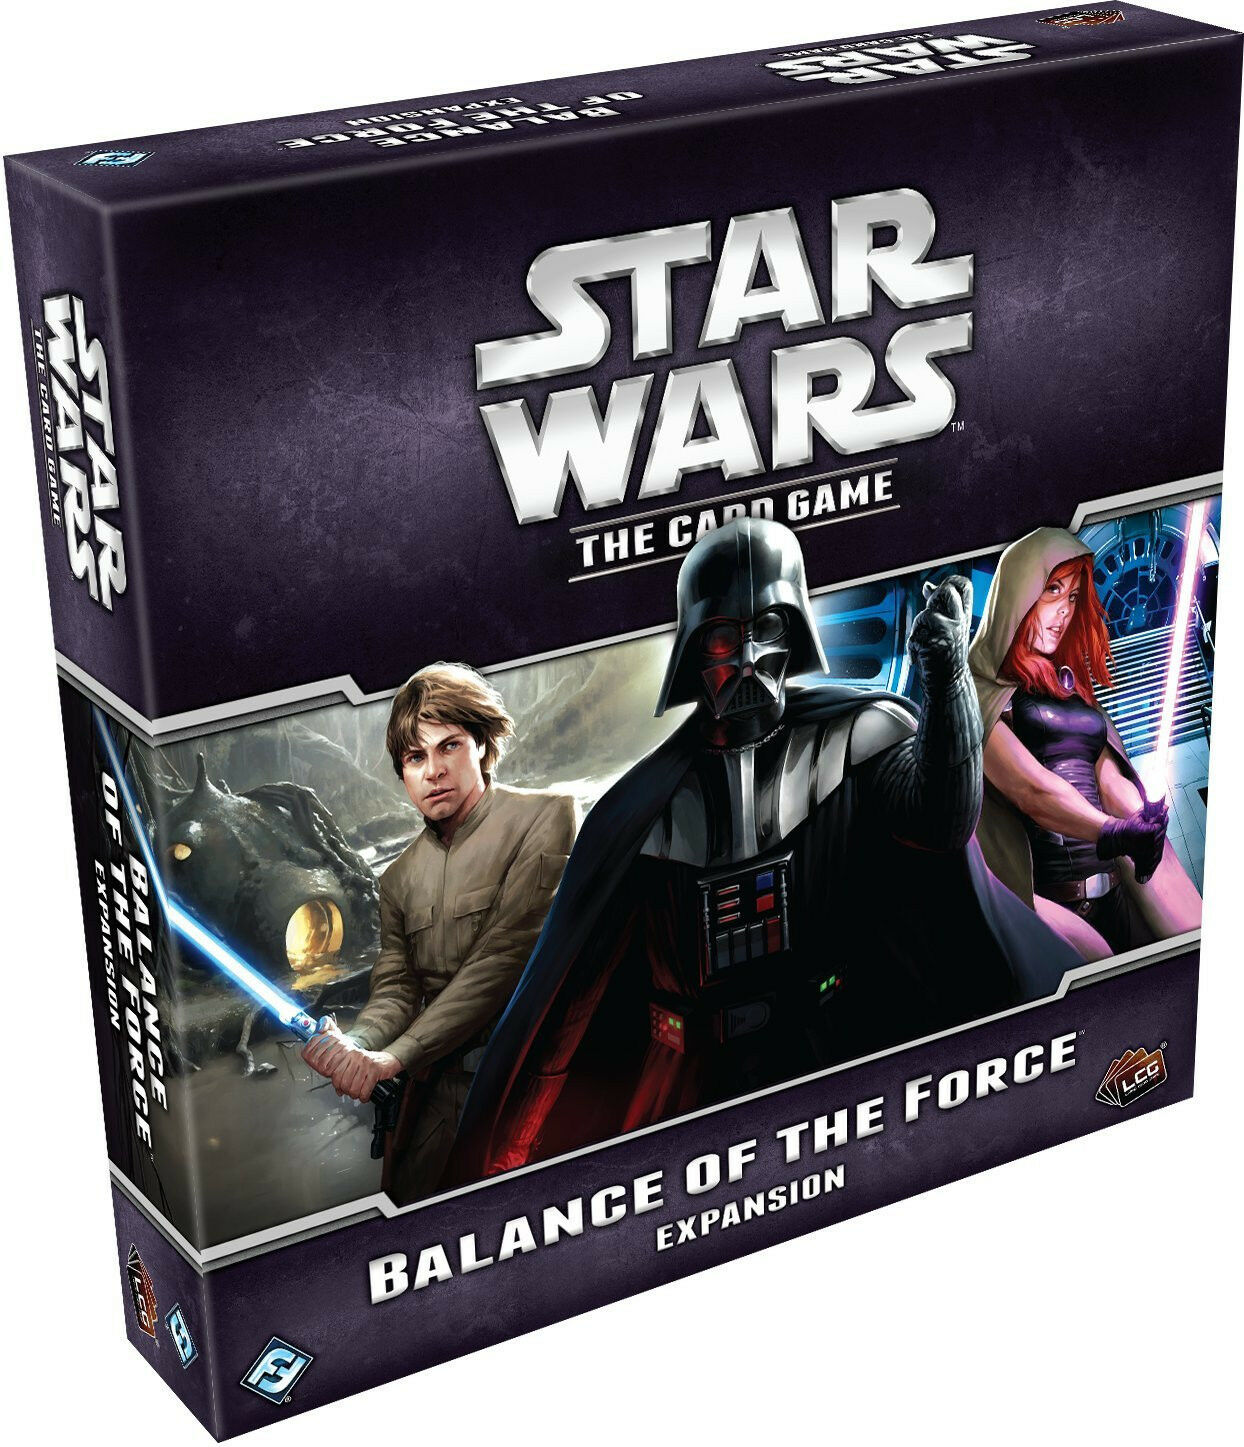 Star Wars Lcg  Balance of the Force Expansion by Star Wars